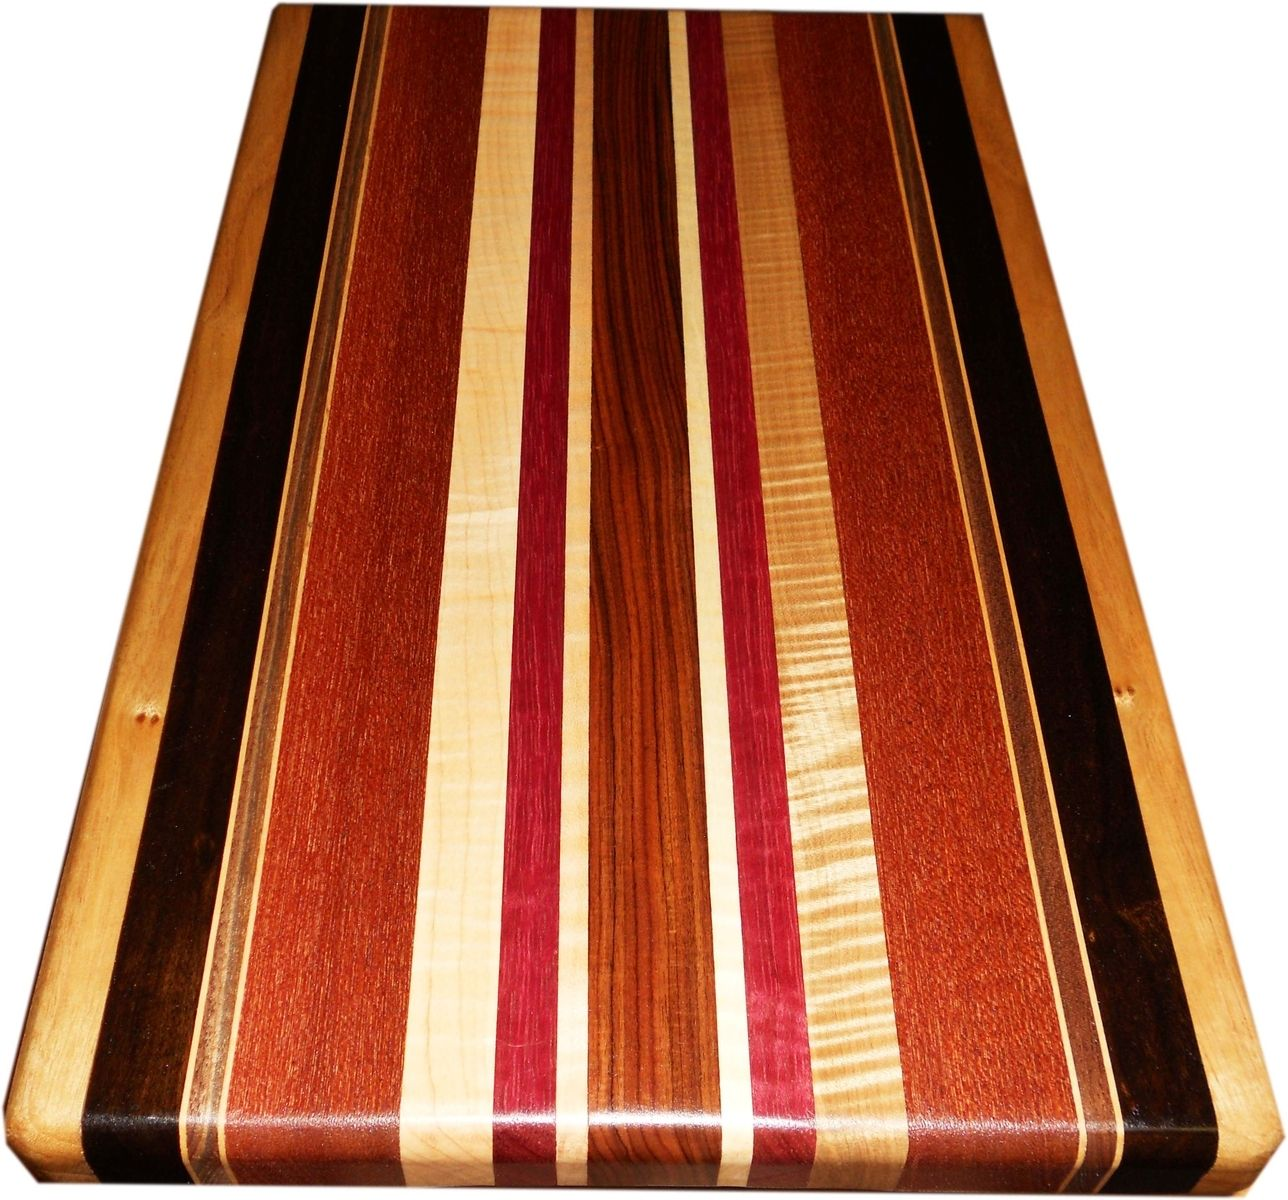 Buy A Custom Made Exotic Wood Cutting Board Full Size